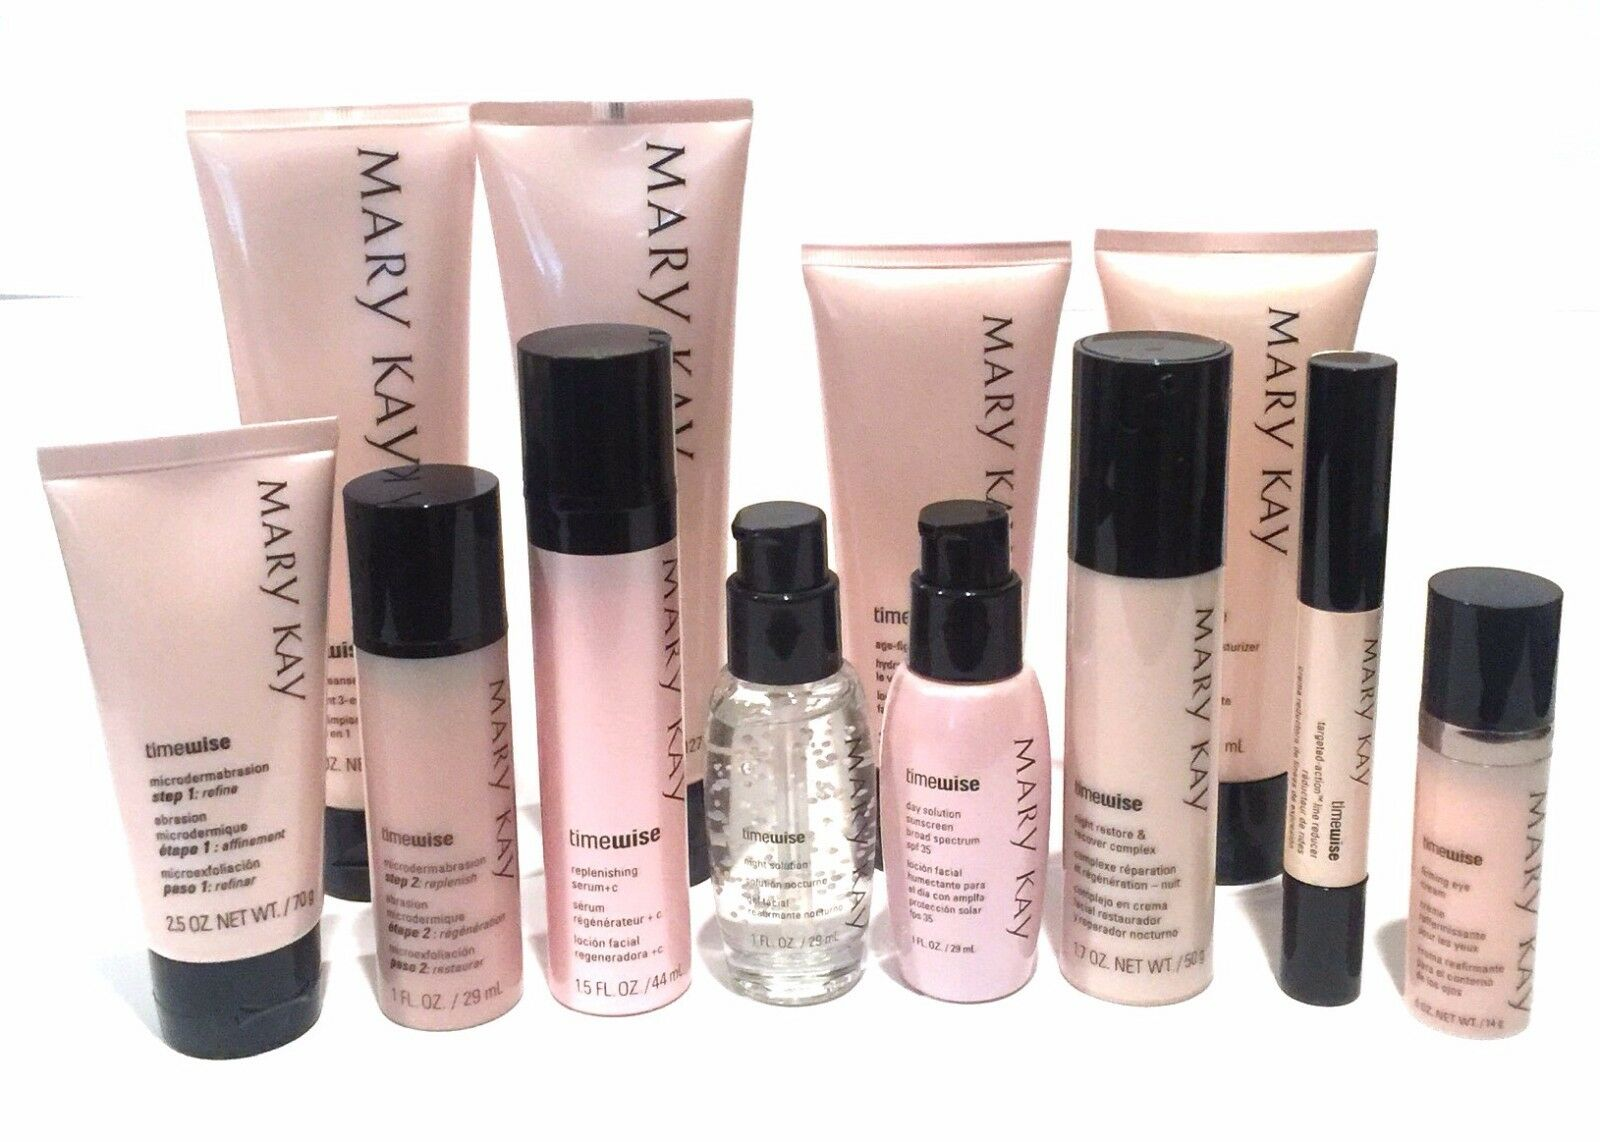 Mary kay facial products — pic 3